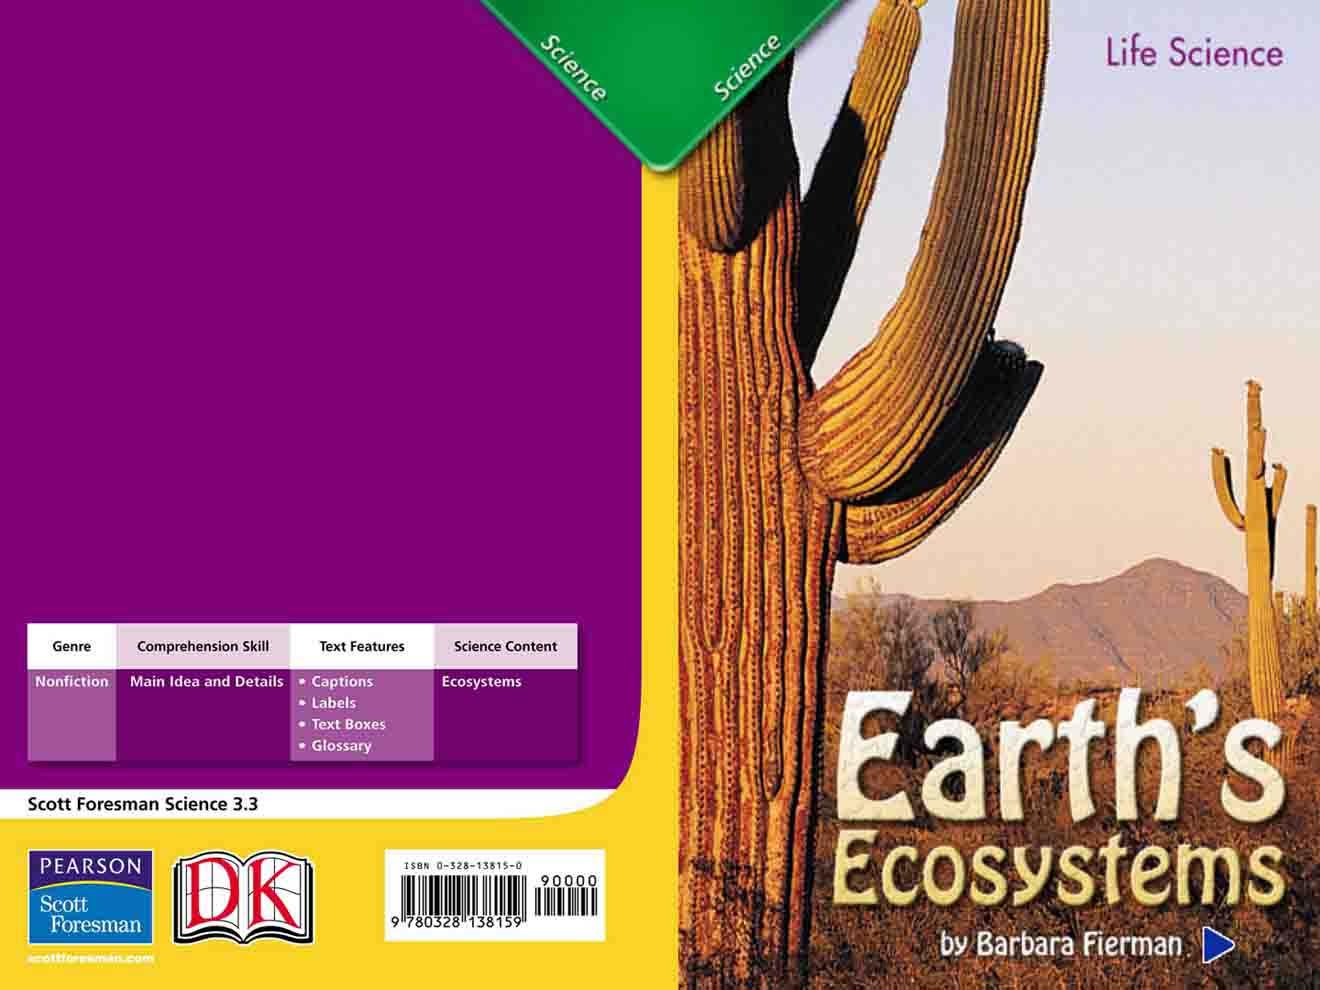 http://uupload.ir/files/18px_earths_ecosystems_(m)-1.jpg